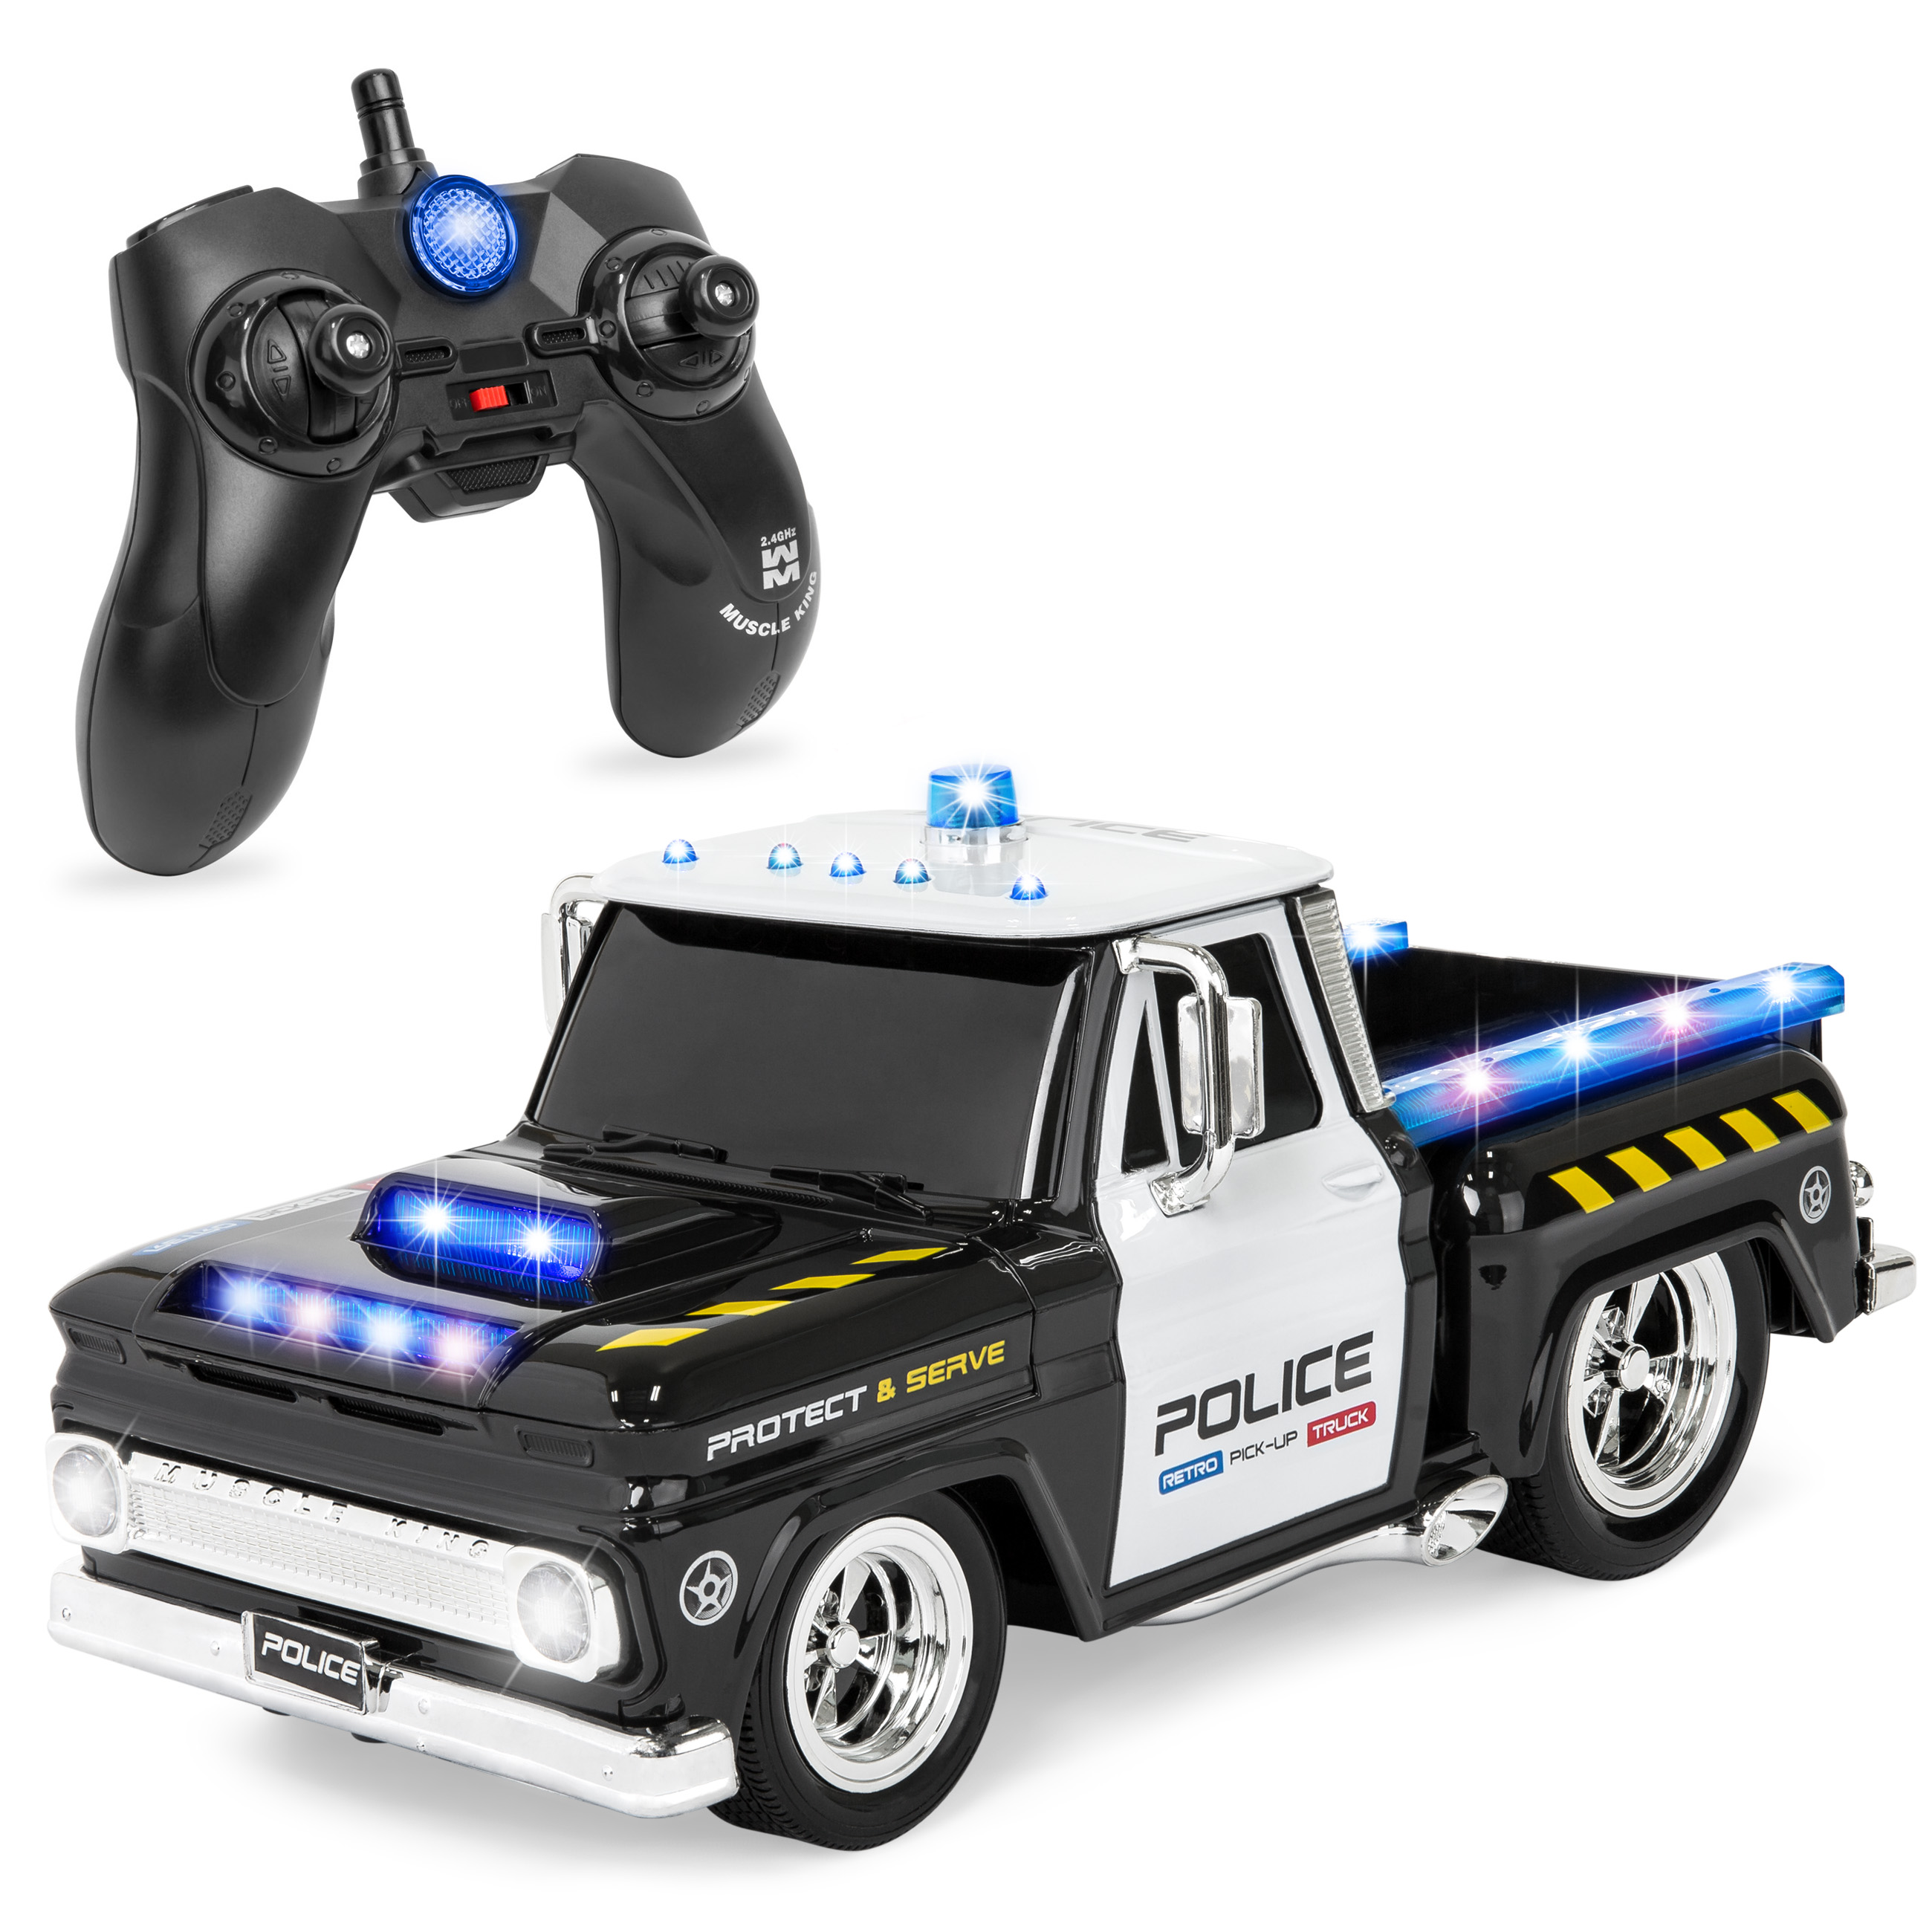 Best Choice Products 1/16 Scale Kids Remote Control Police Emergency Rescue Truck RC Car Toy w/ Headlights, Sounds, 7.4mph Top Speed - Black/White